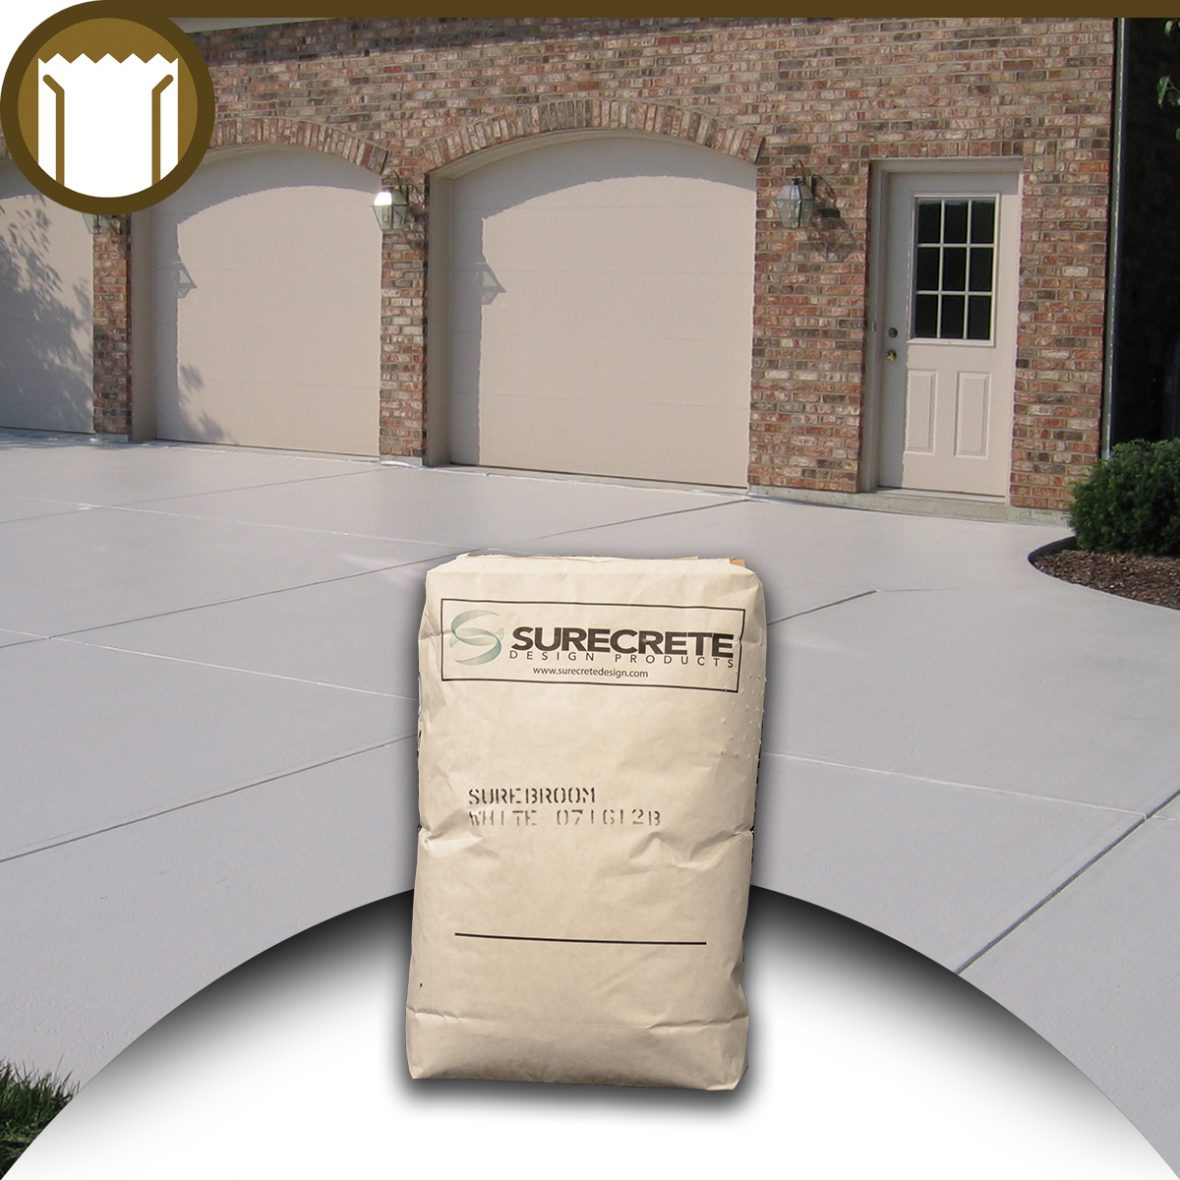 50 Lb Surecrete Broom Concrete Overlay